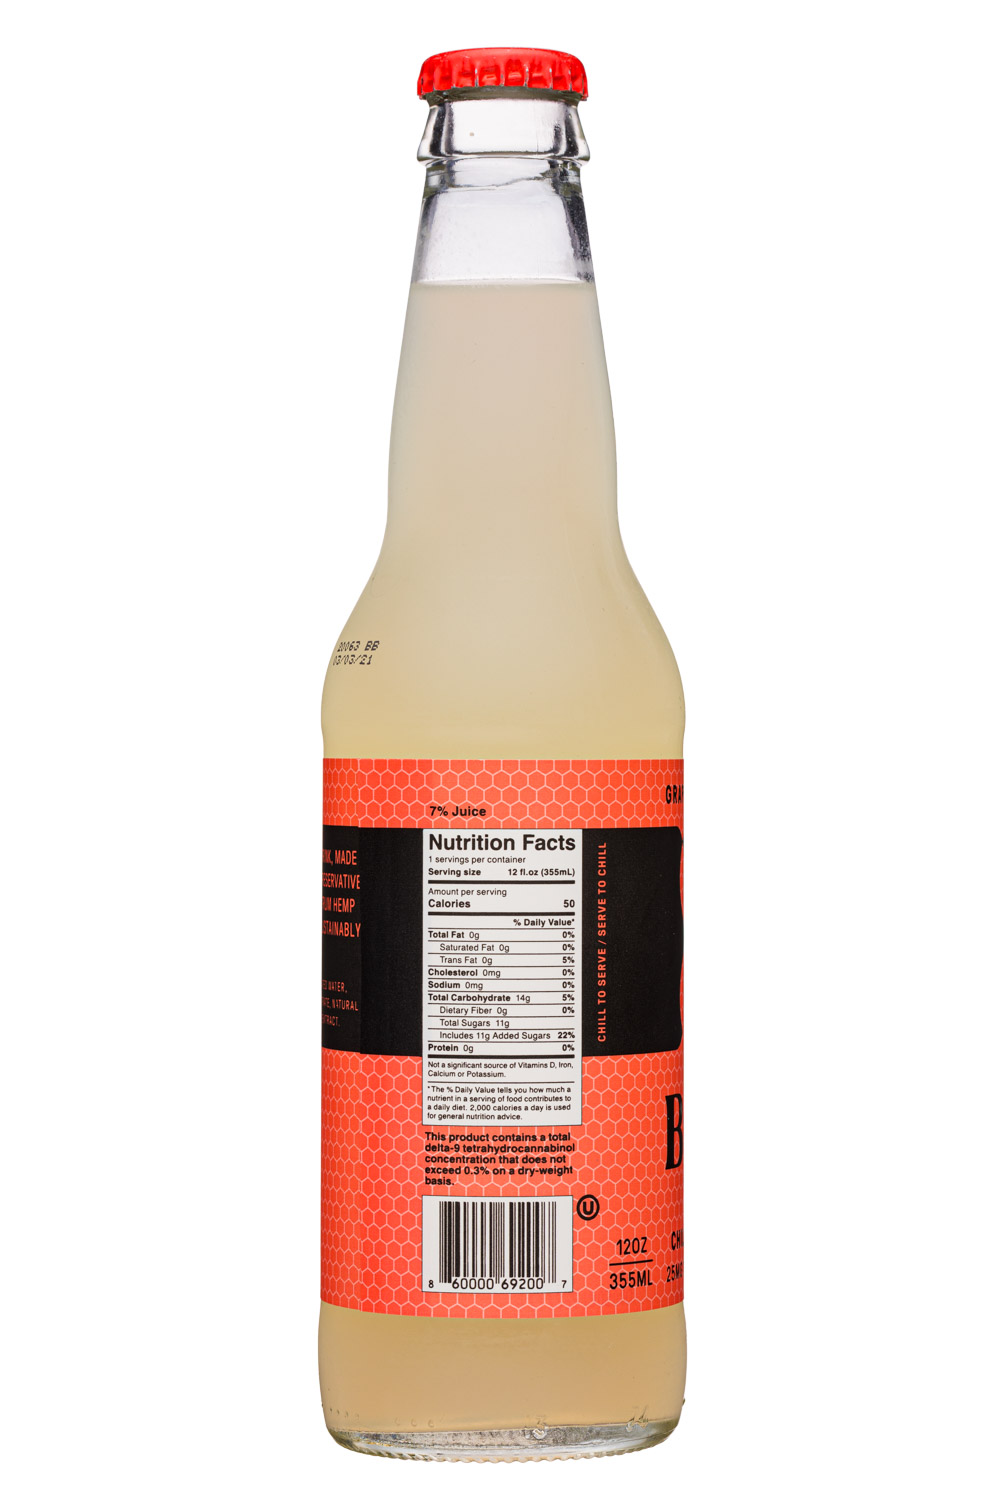 Bimble: Bimble-12oz-2020-Sparkling-GrapefruitBasilMint-Facts